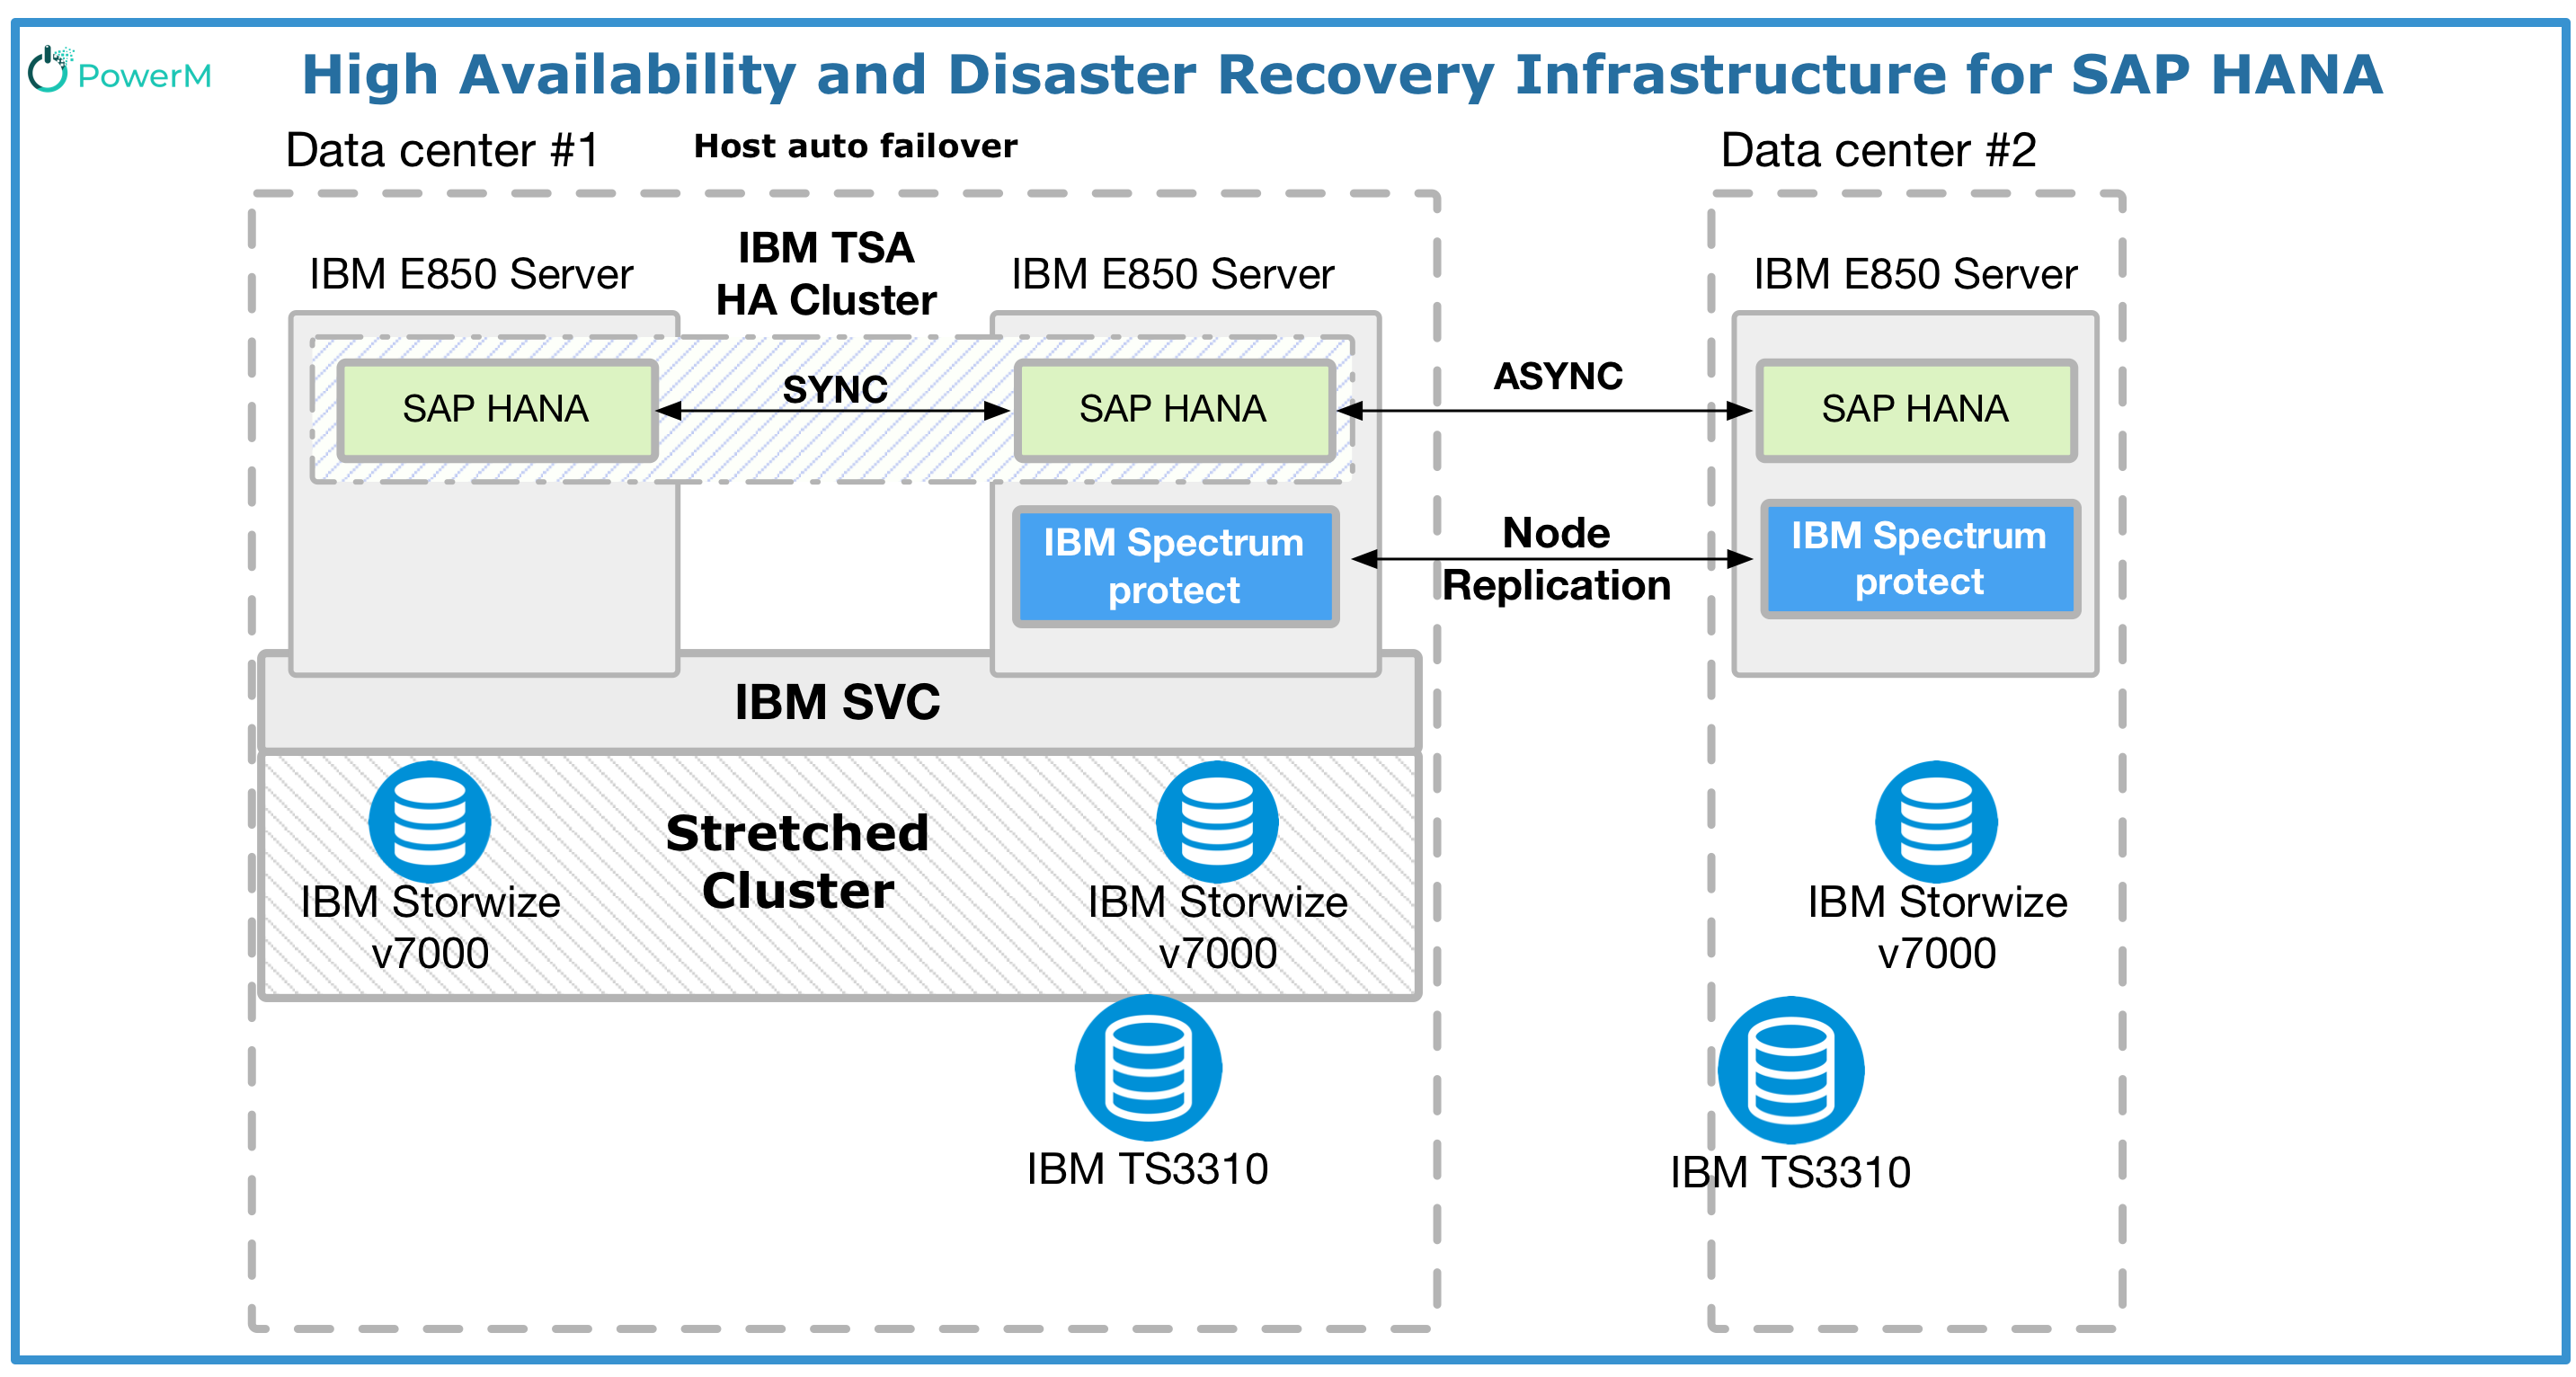 High Availability And Disaster Recovery Infrastructure For